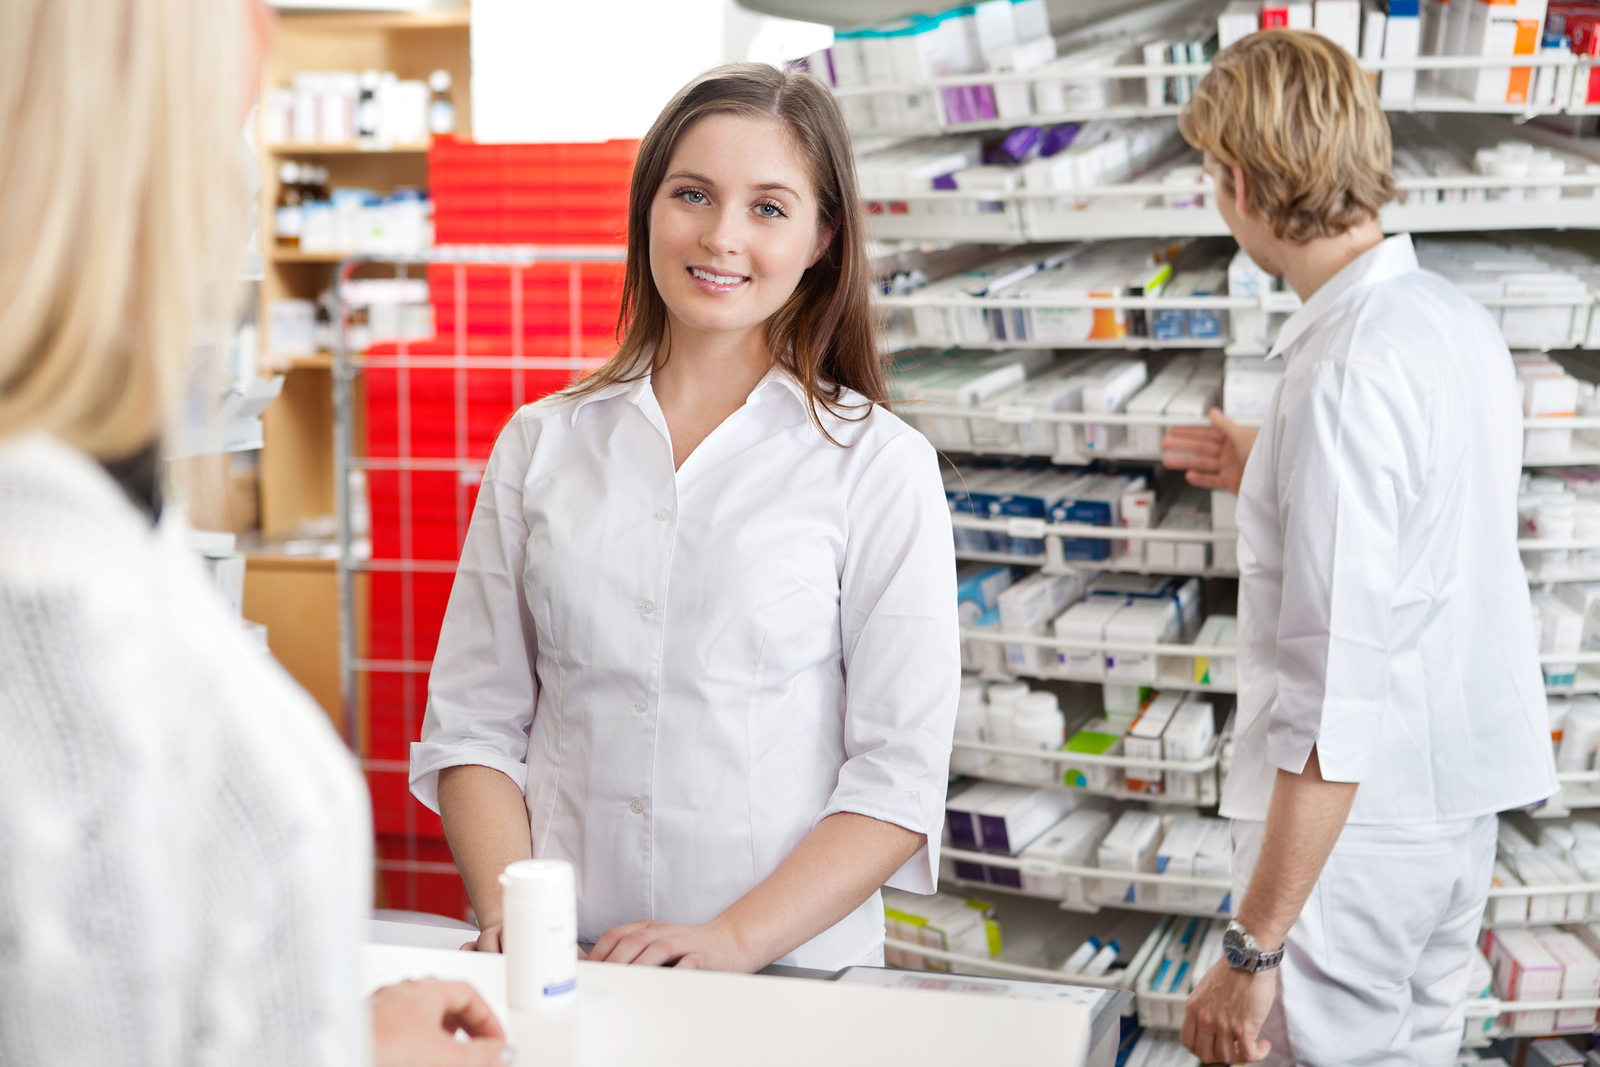 Pharmacy easy majors that pay good